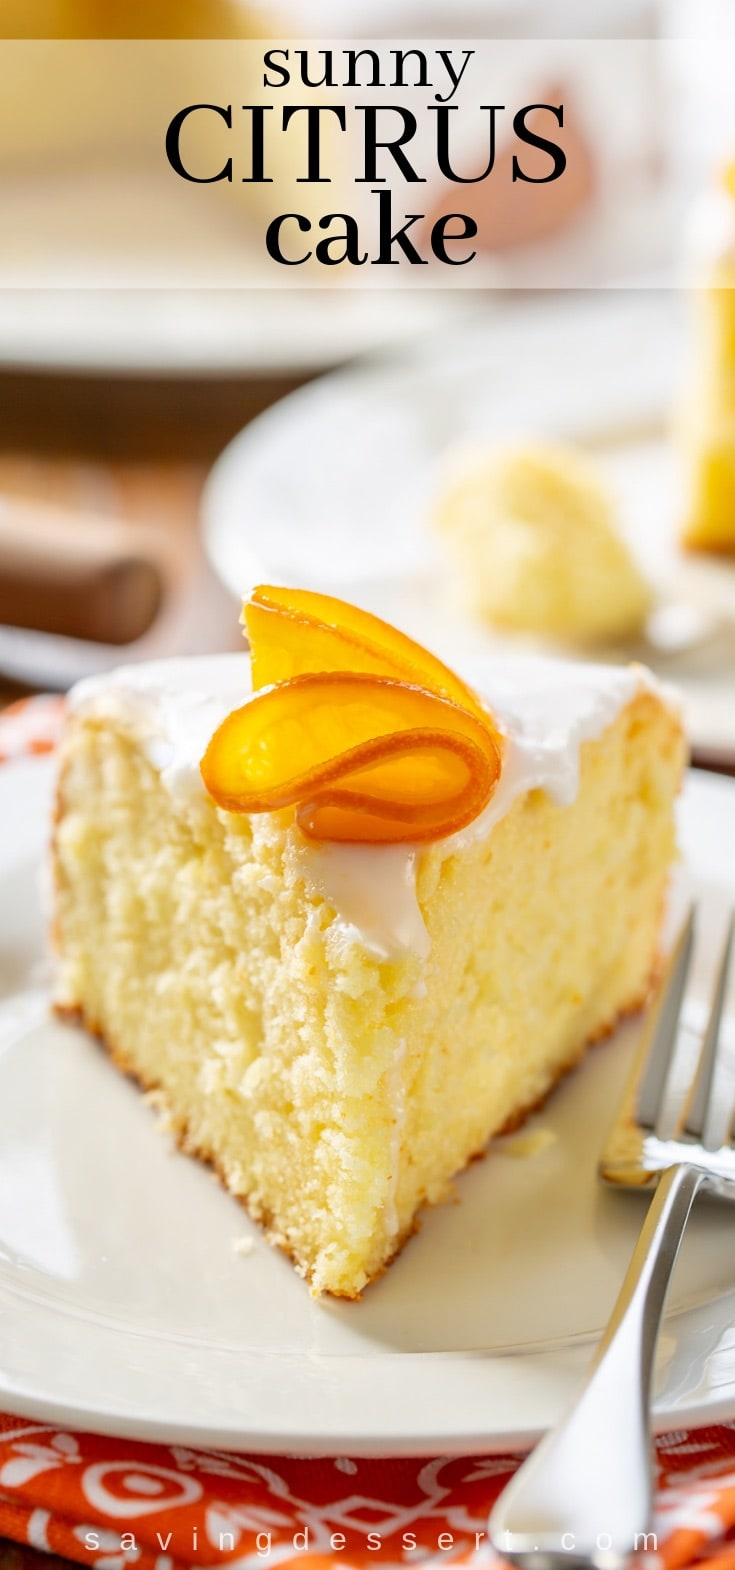 A slice of sunny citrus cake with candied oranges on top